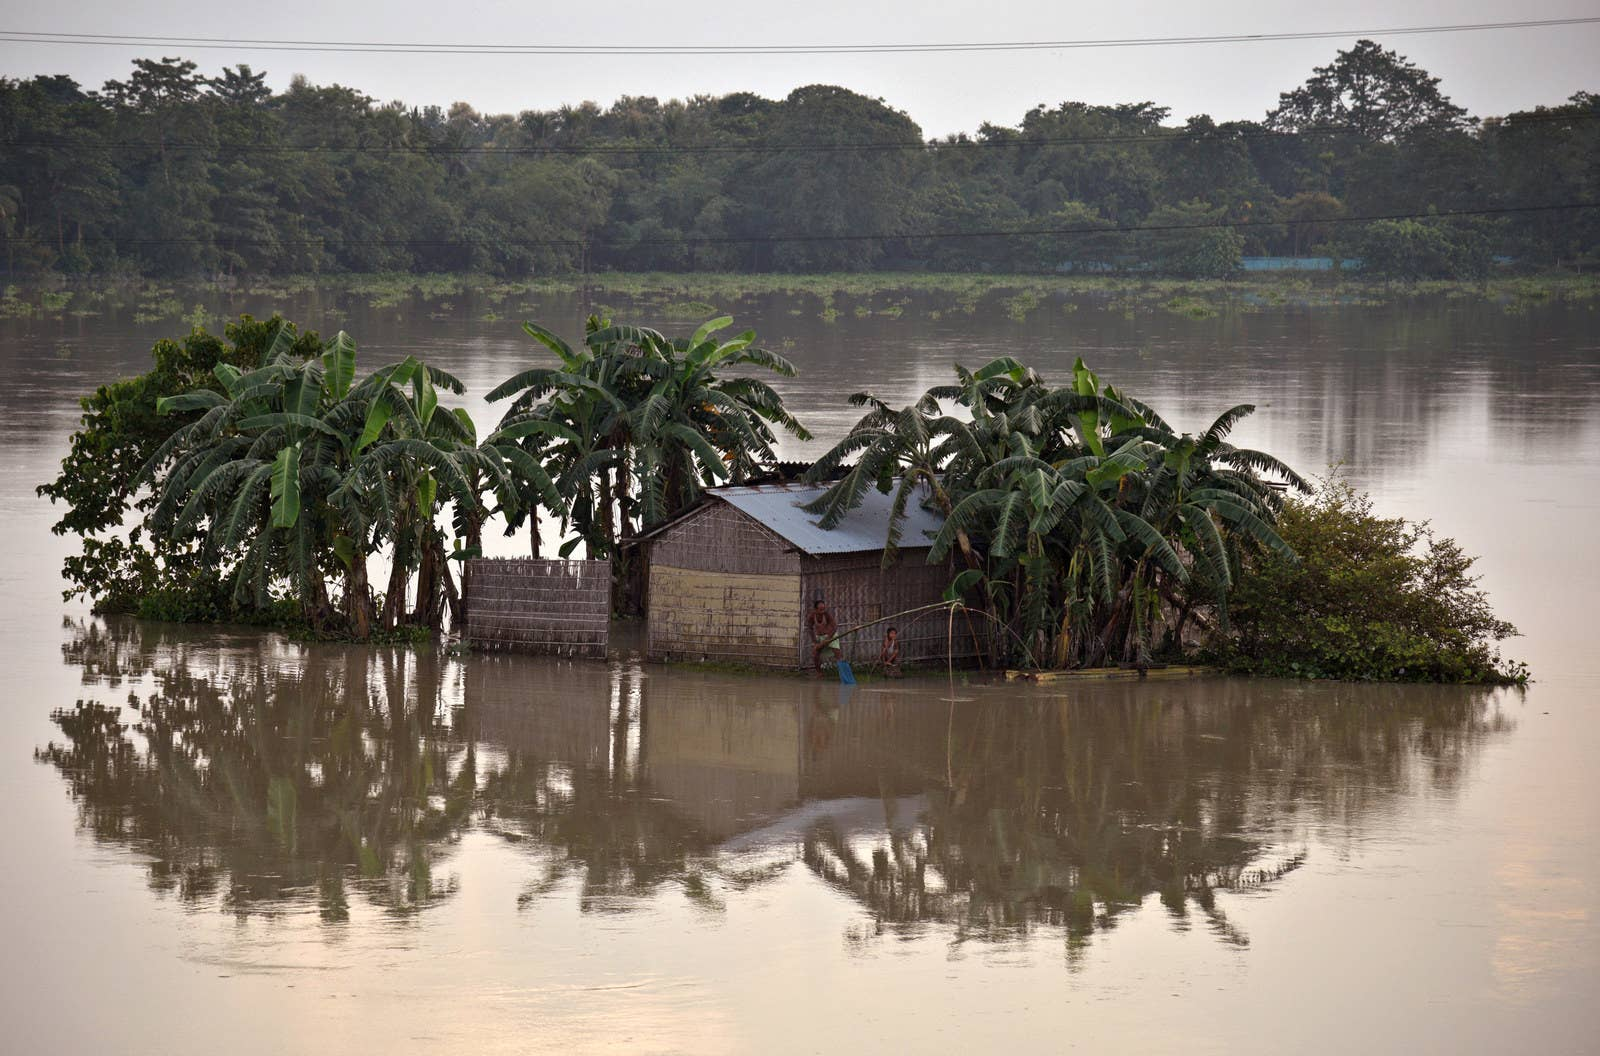 A man casts his fishing net in the flood waters next to his partially submerged hut in the northeastern Indian state of Assam.